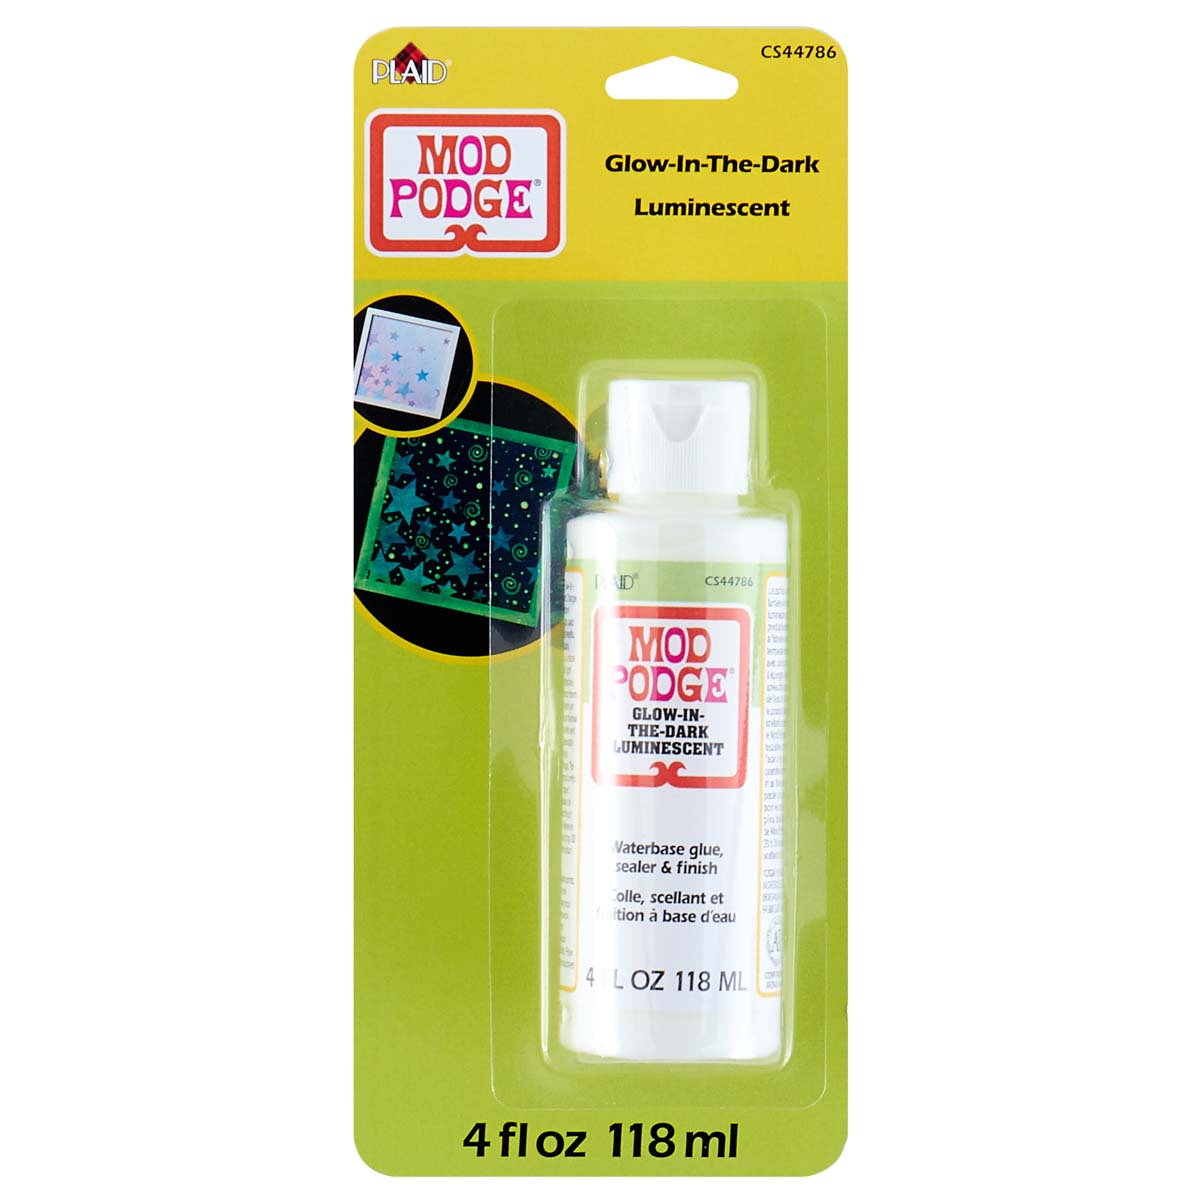 Mod Podge ® Glow-In-The-Dark, 4 oz. - CS44786